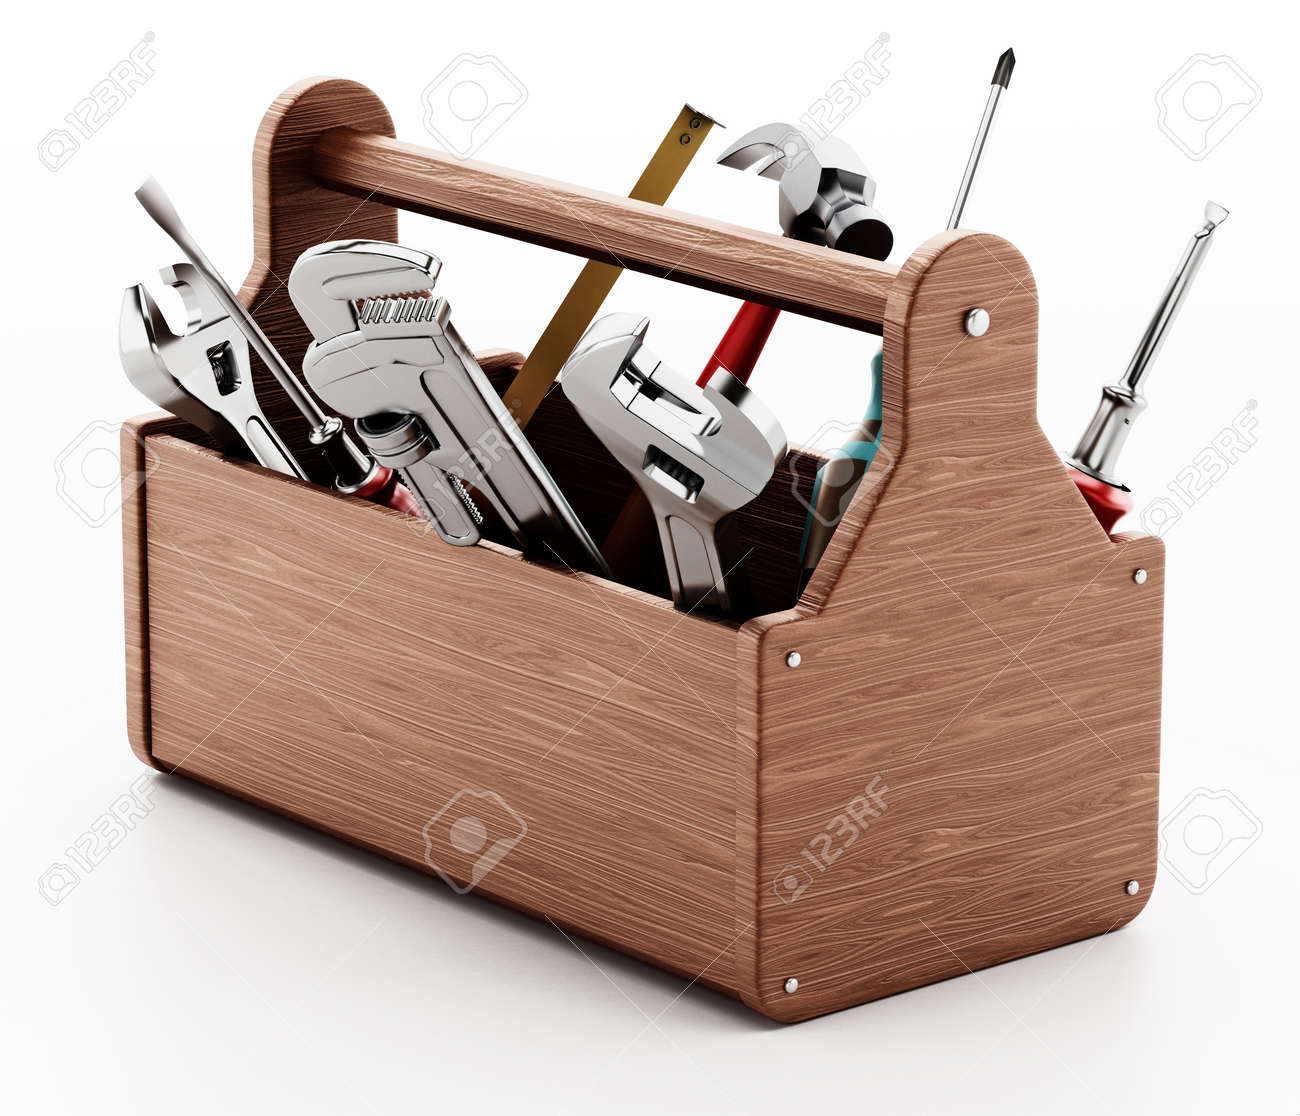 Wooden toolbox with various hand tools isolated on white background. 3D illustration. - 171774650